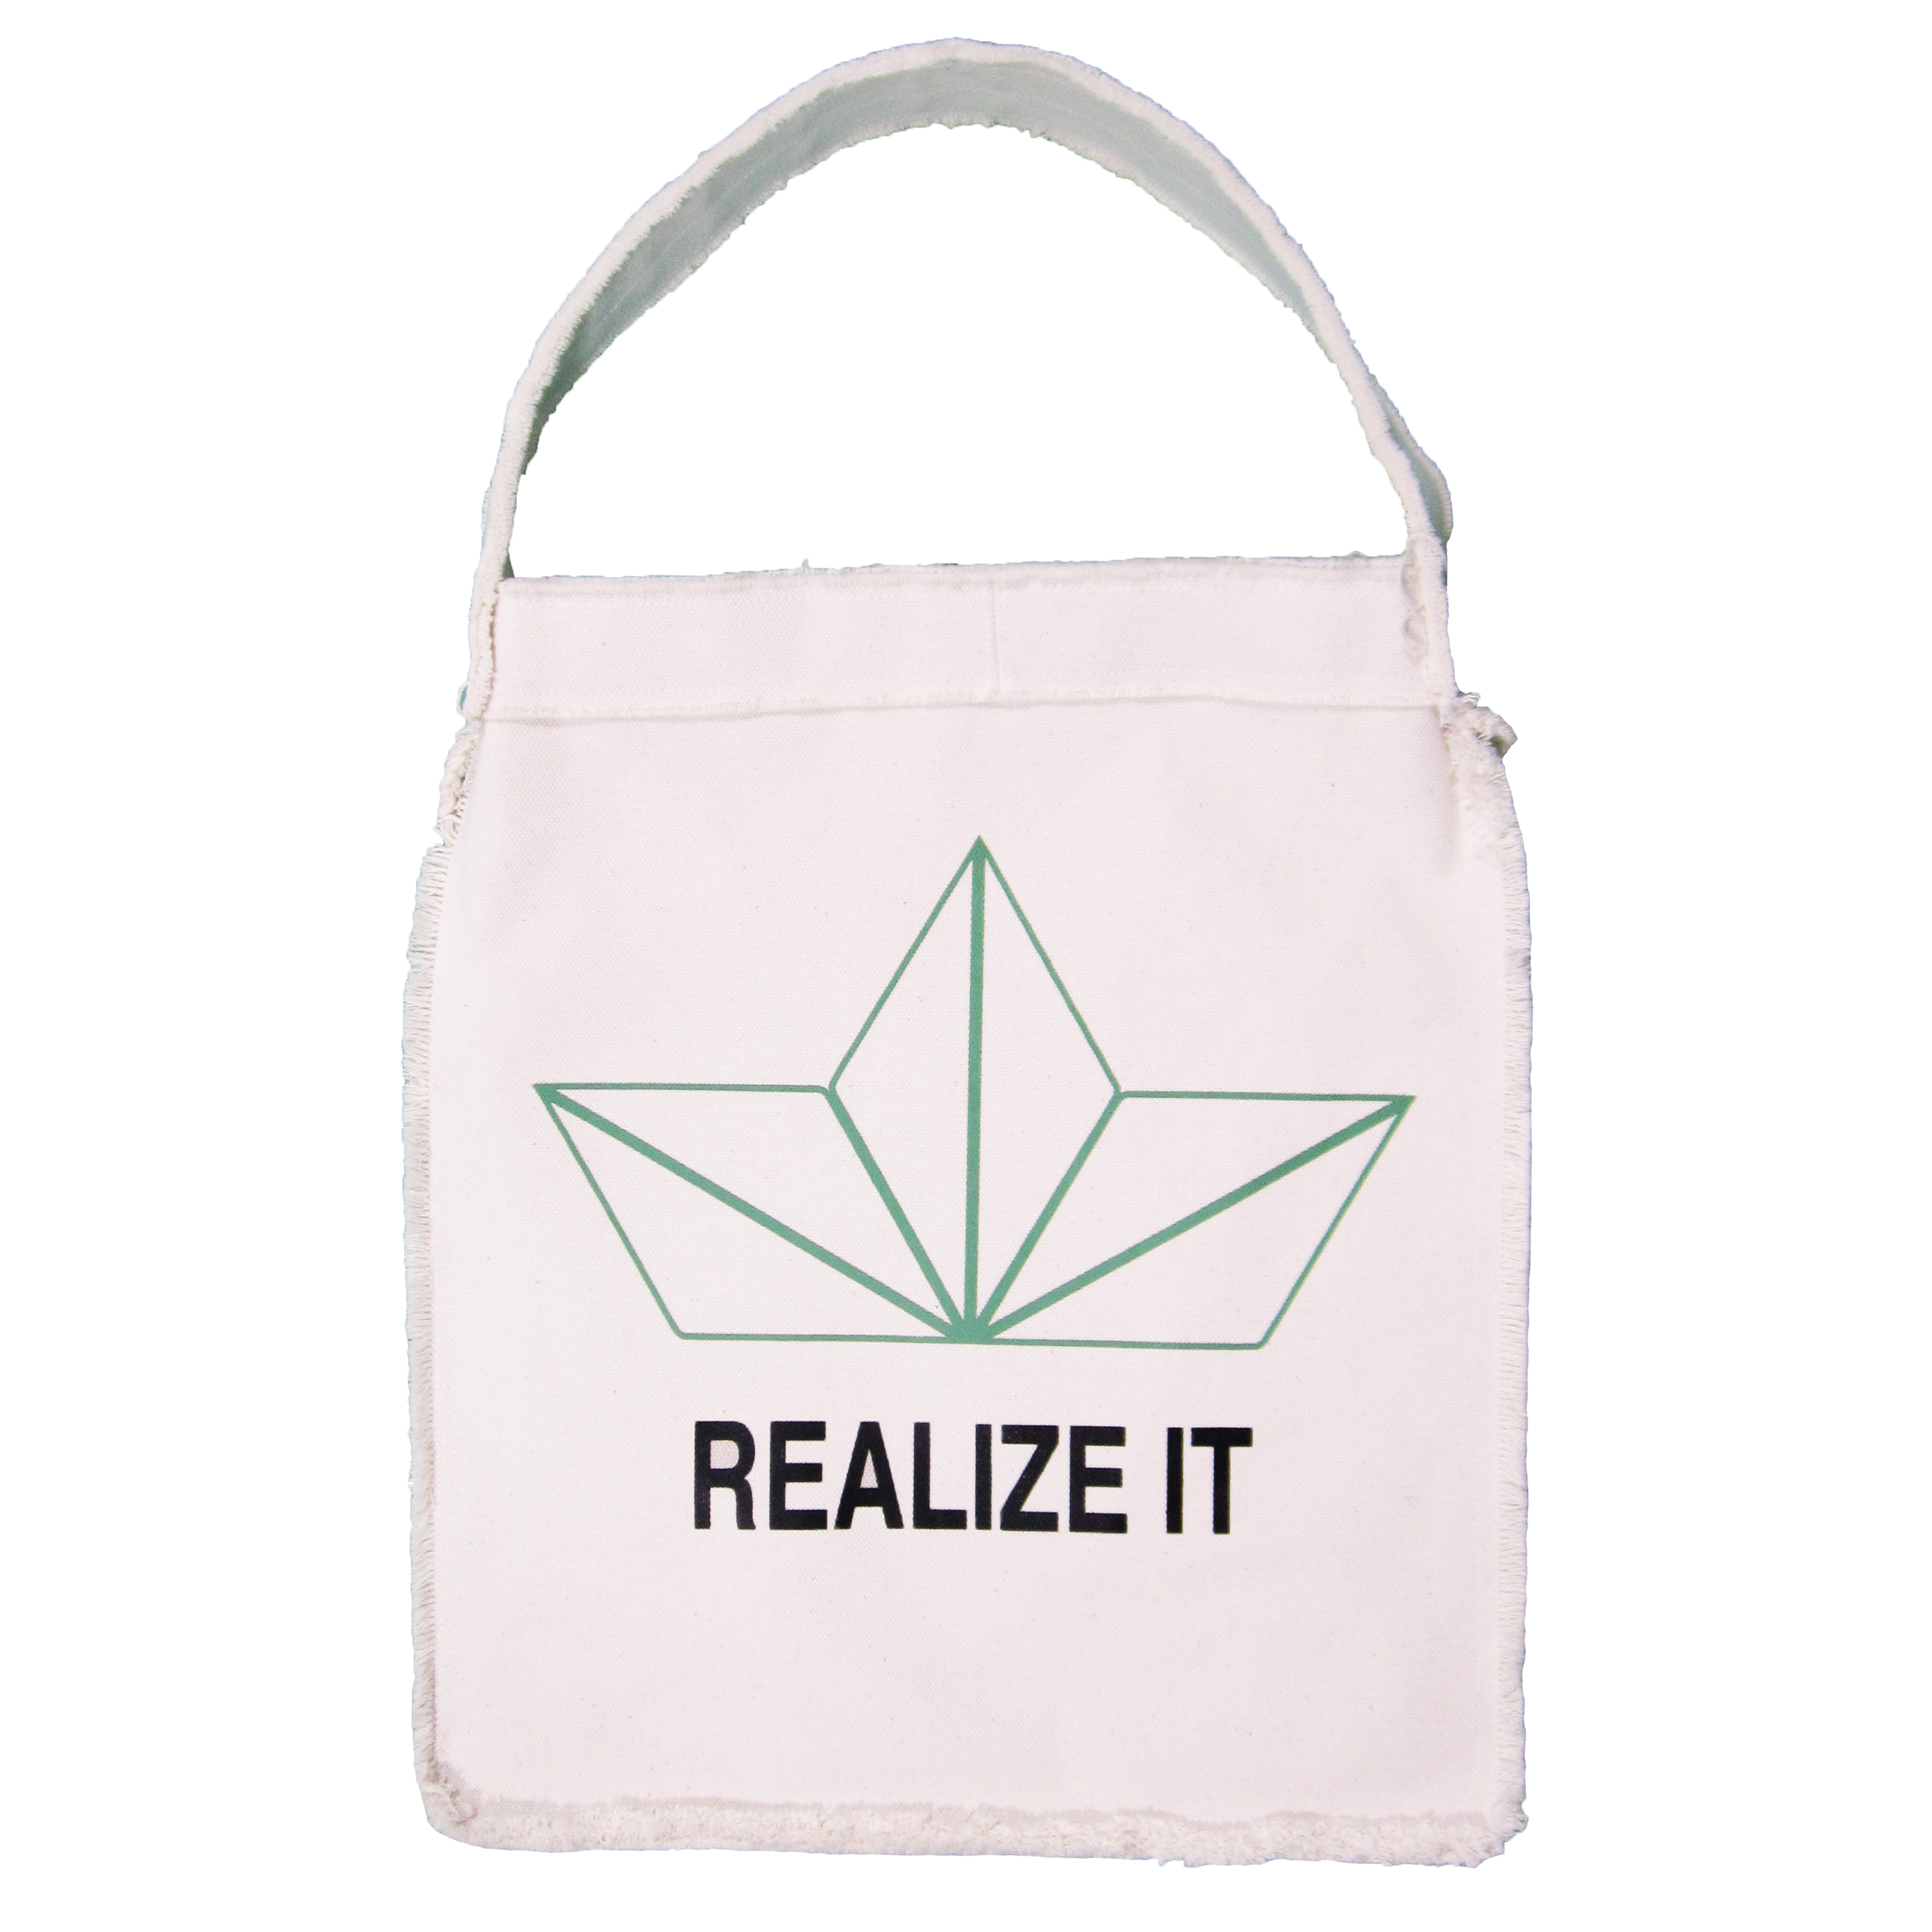 REALIZE IT Tote Bag - 画像1